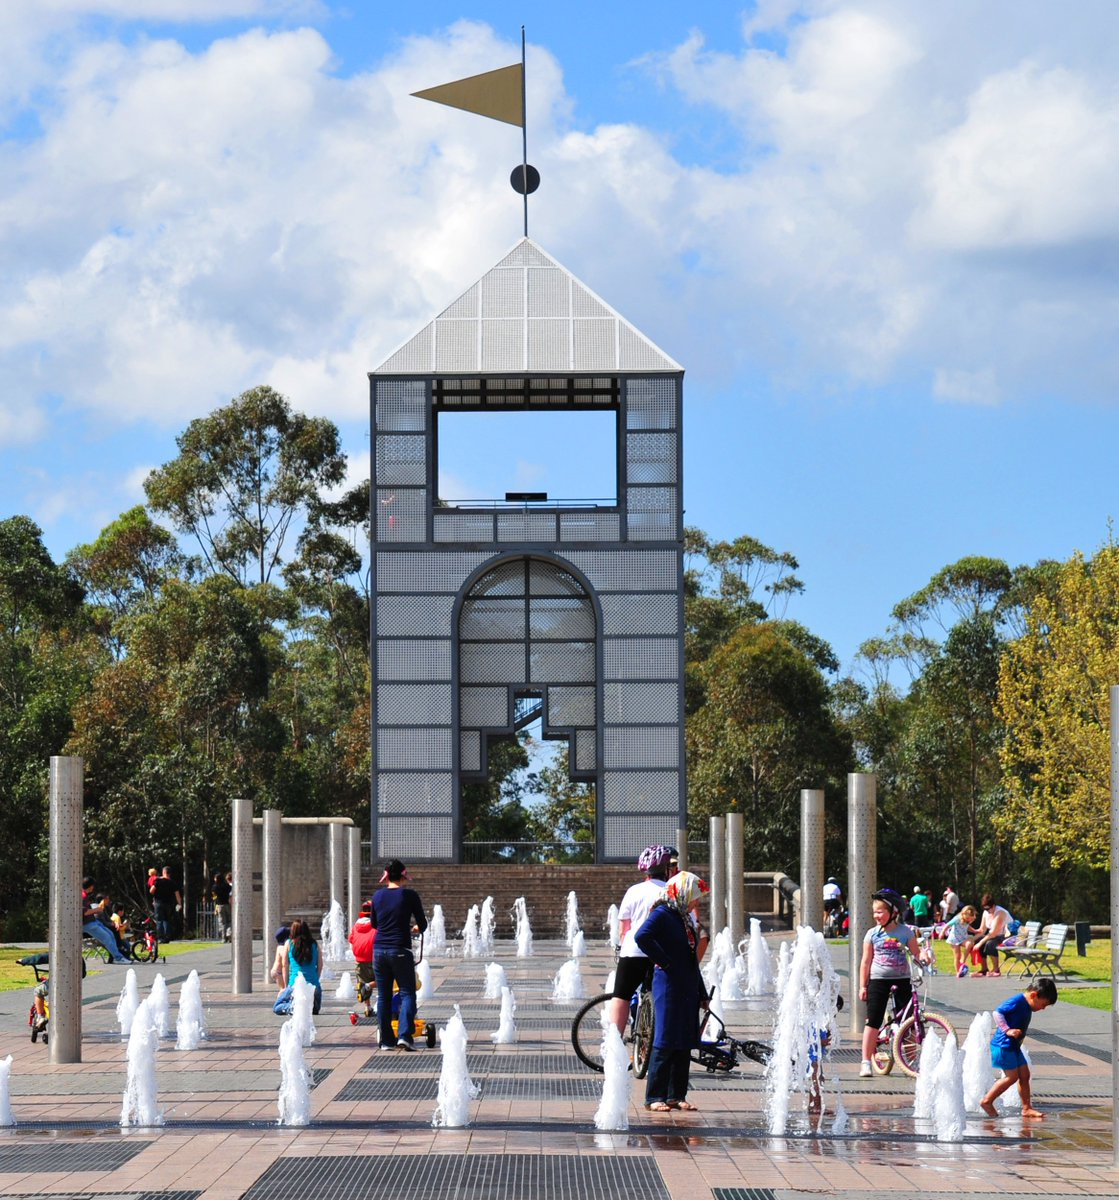 Sydney Olympic Park On Twitter Remember The Hours Of Operation For Our Water Features Including Play Area Blaxland Riverside Have